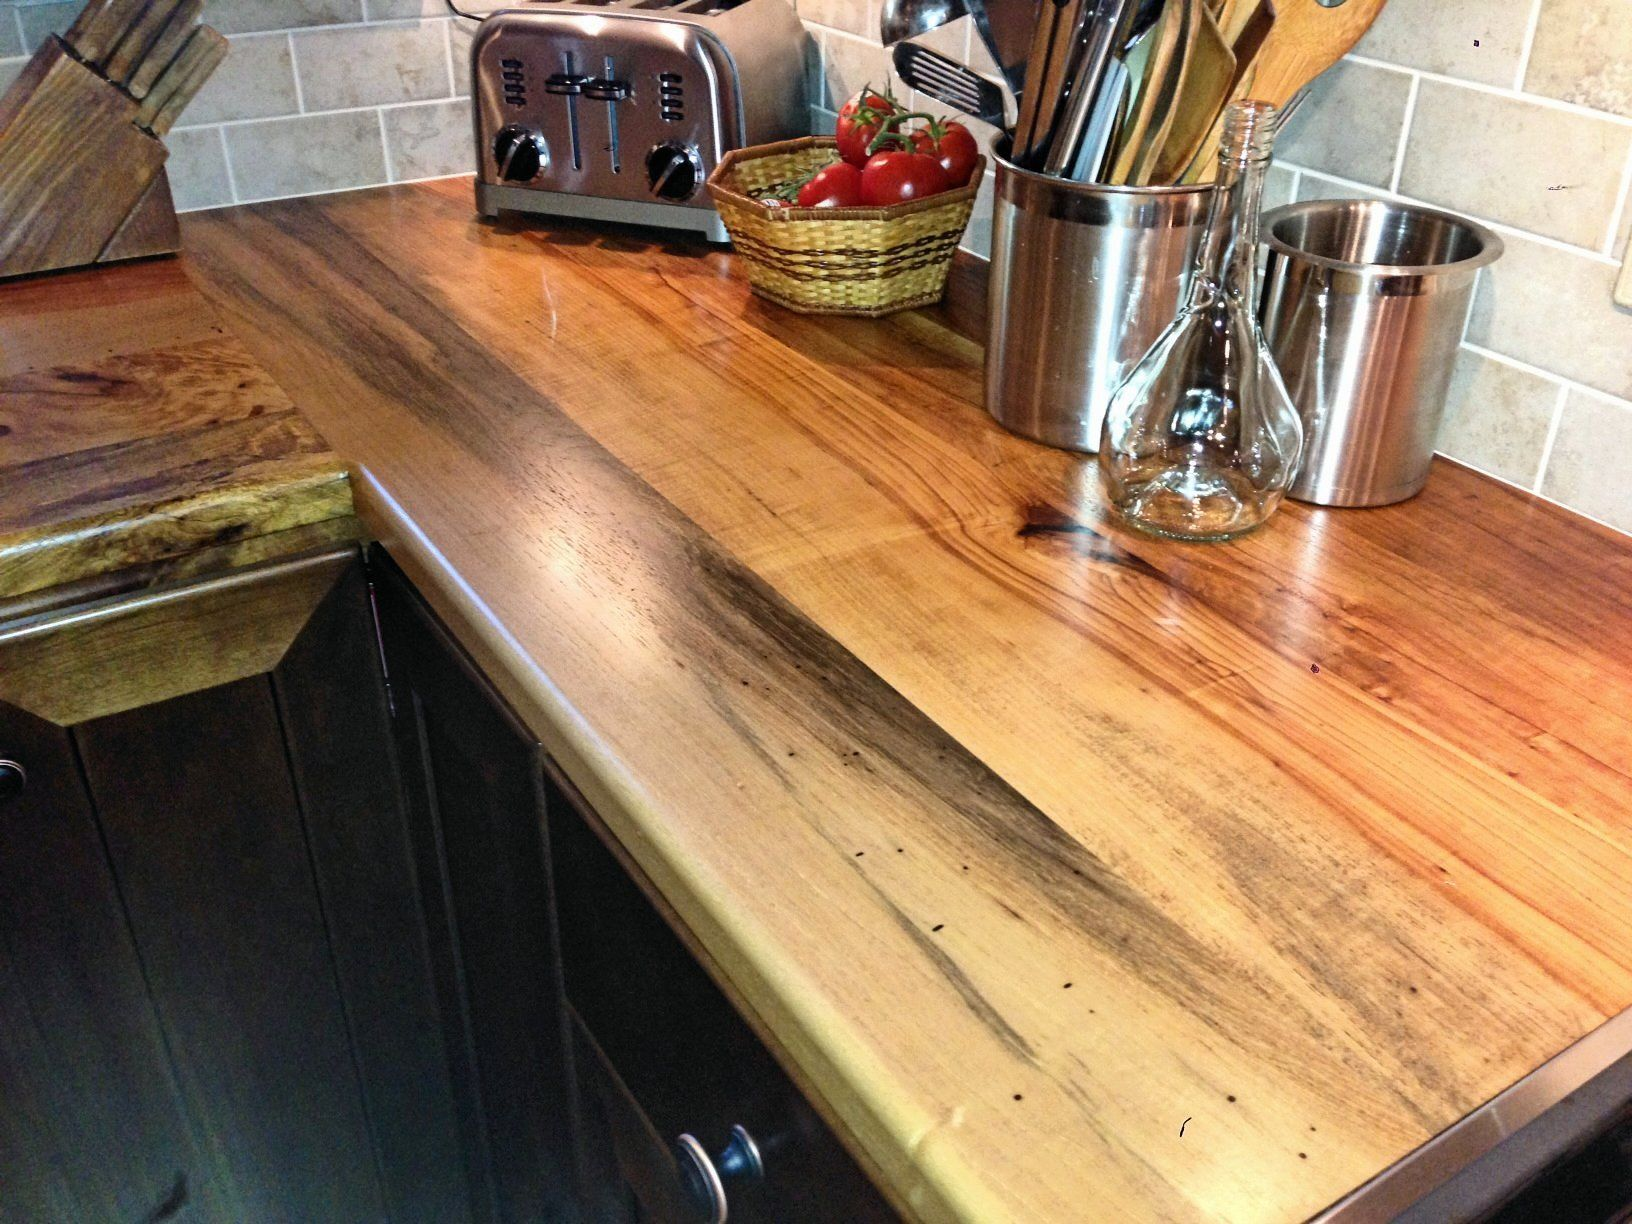 Joint On A Texas Pecan Wood Countertop Face Grain Construction With Waterlox Finish